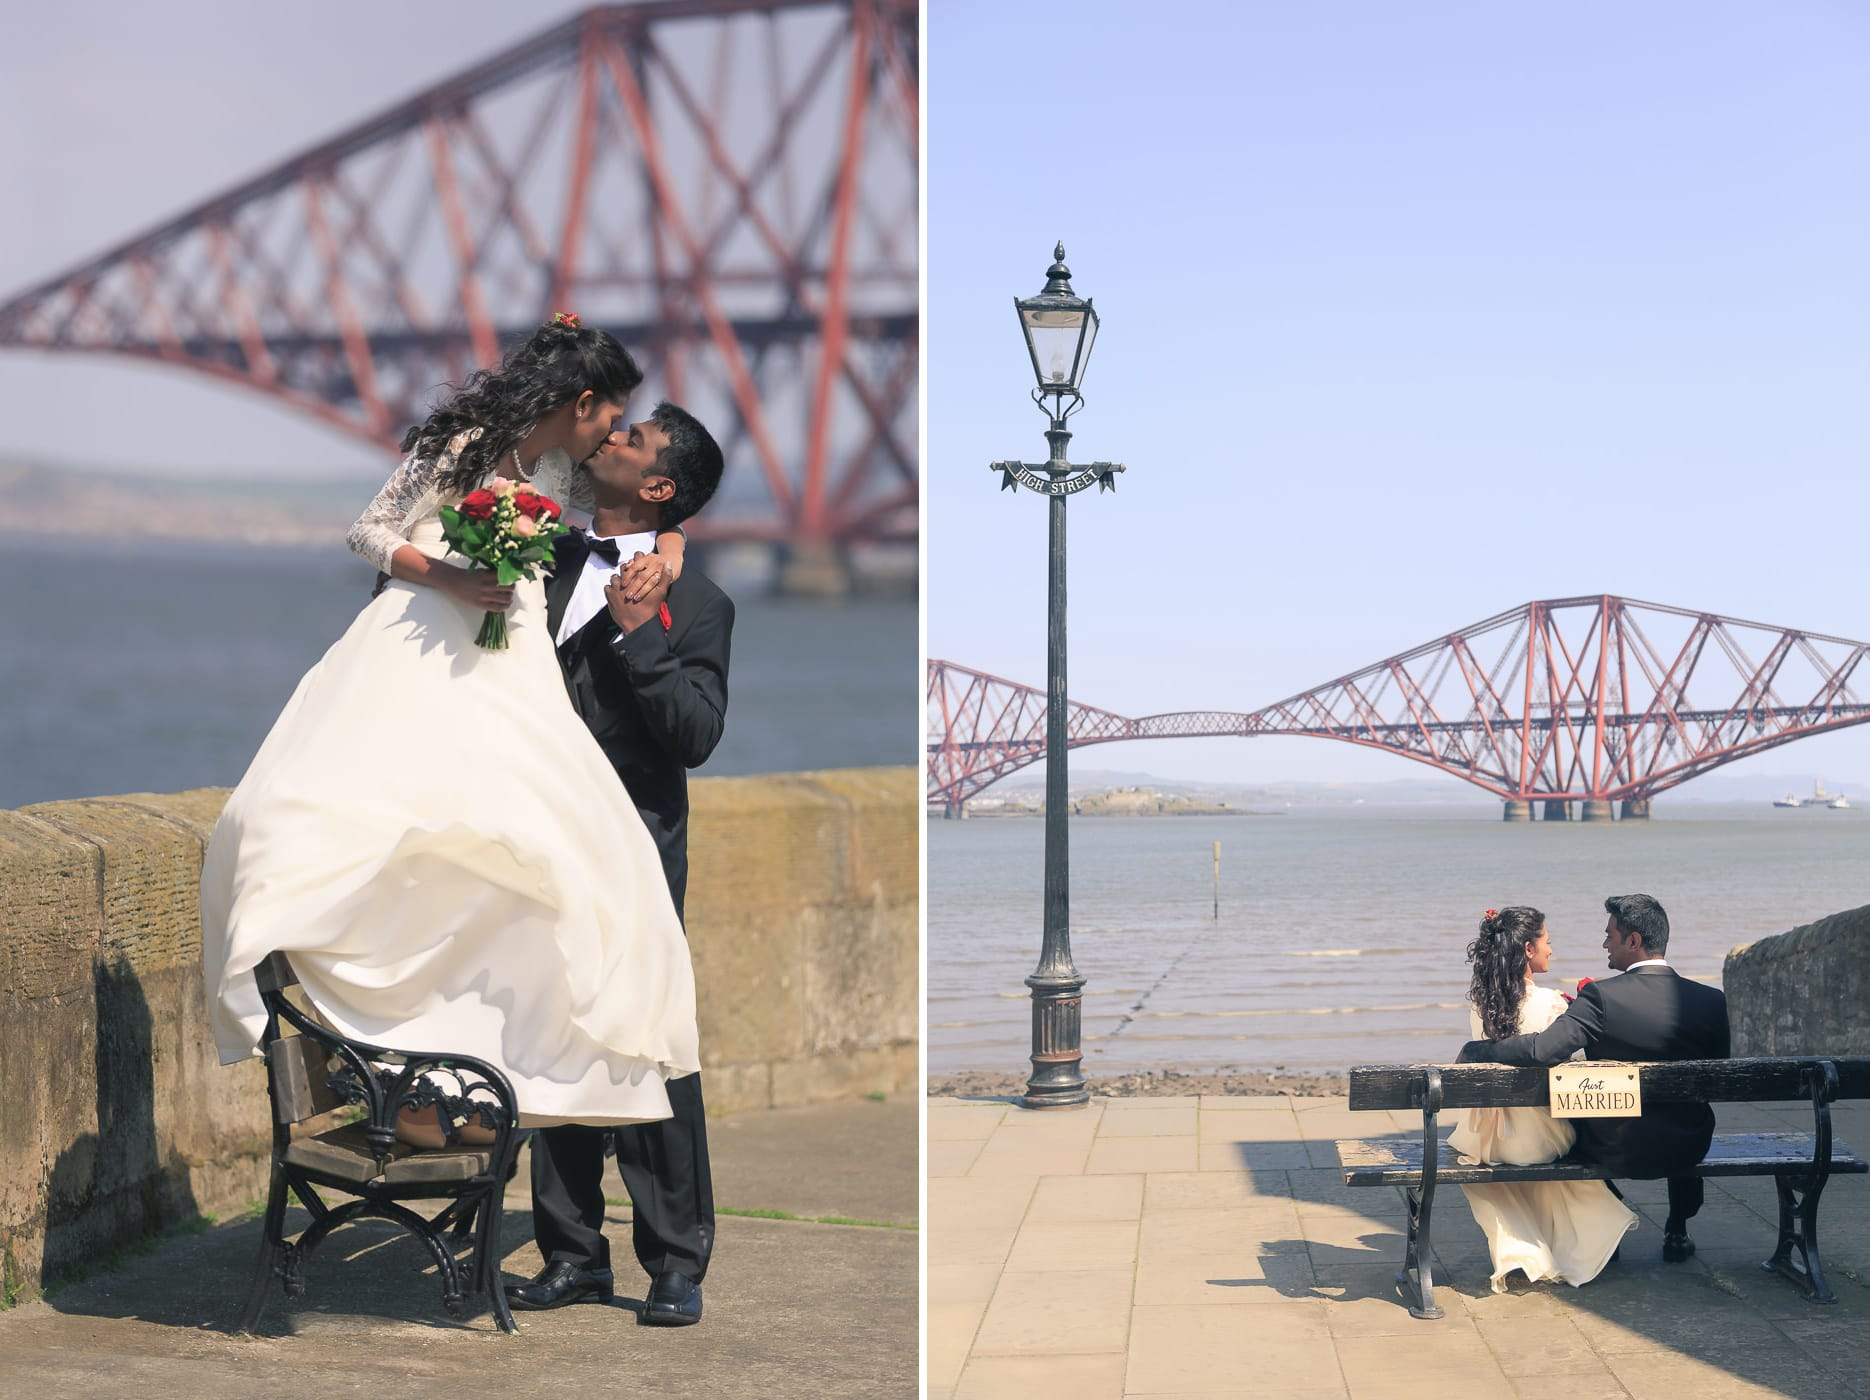 The bride and groom in front of the Forth Rail Bridge